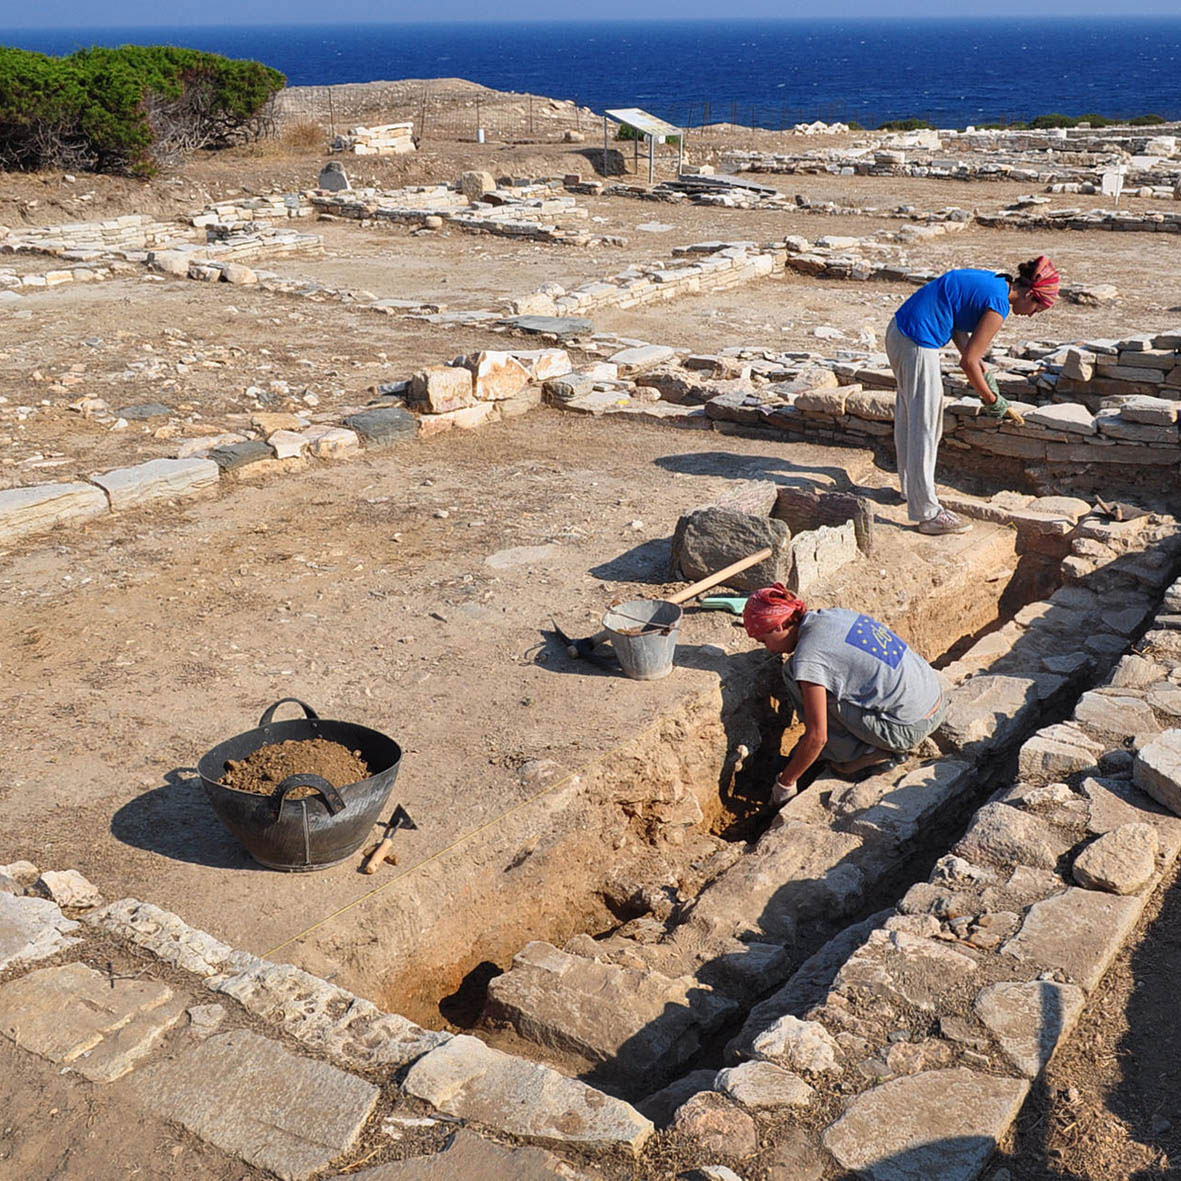 Archaeological excavations at the Mandra site on the uninhabited islet of Despotiko. (Source: xpatathens.com)